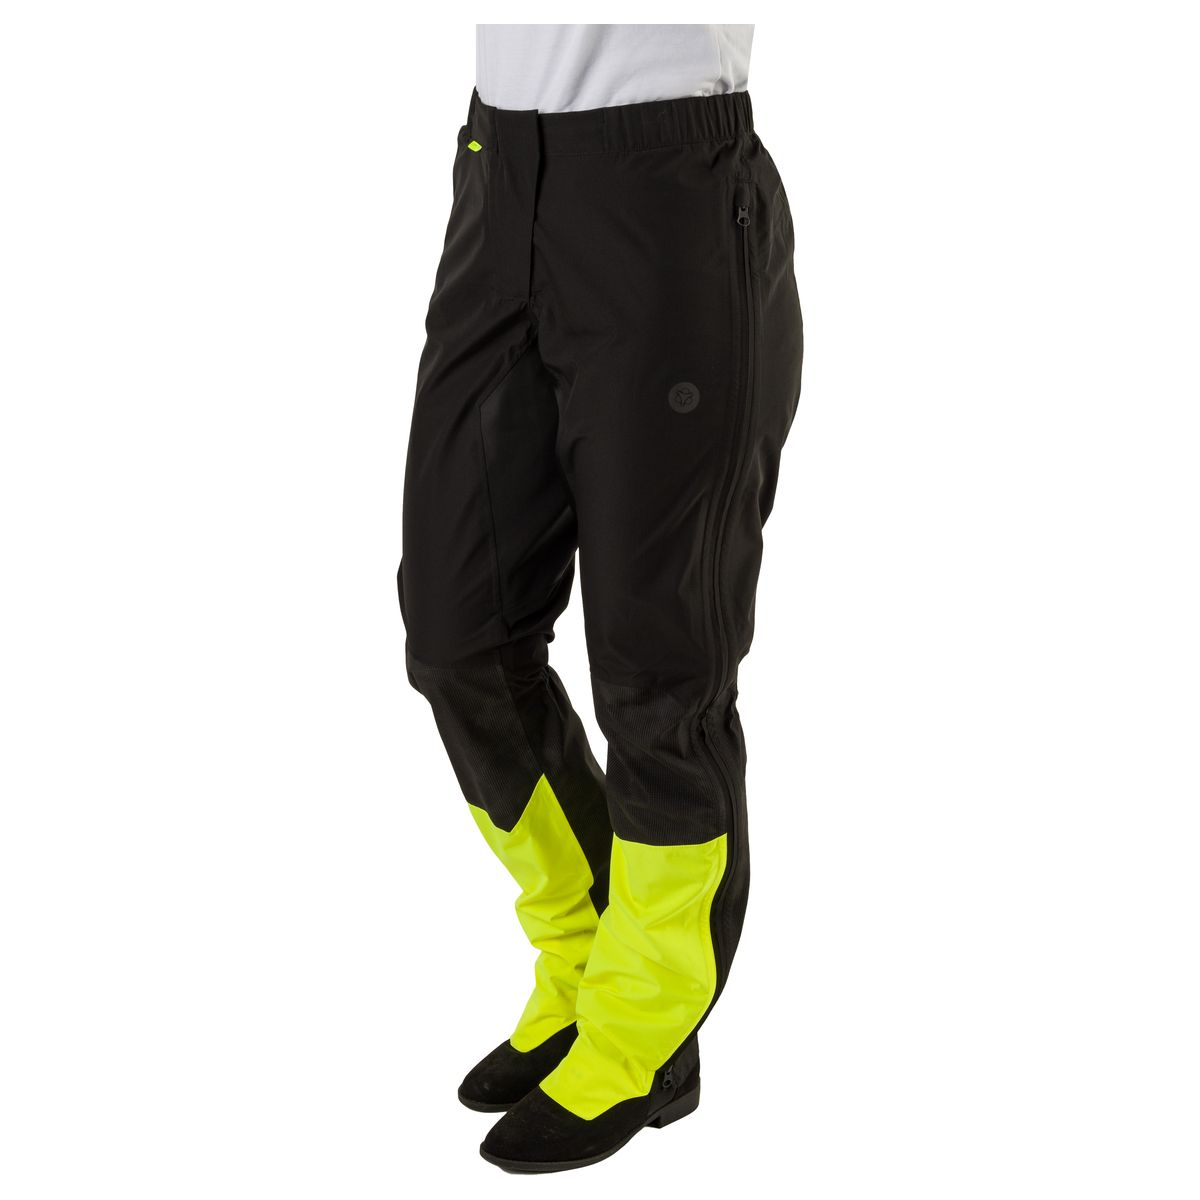 Tech Regenbroek Commuter Dames Hi-vis & Reflection fit example